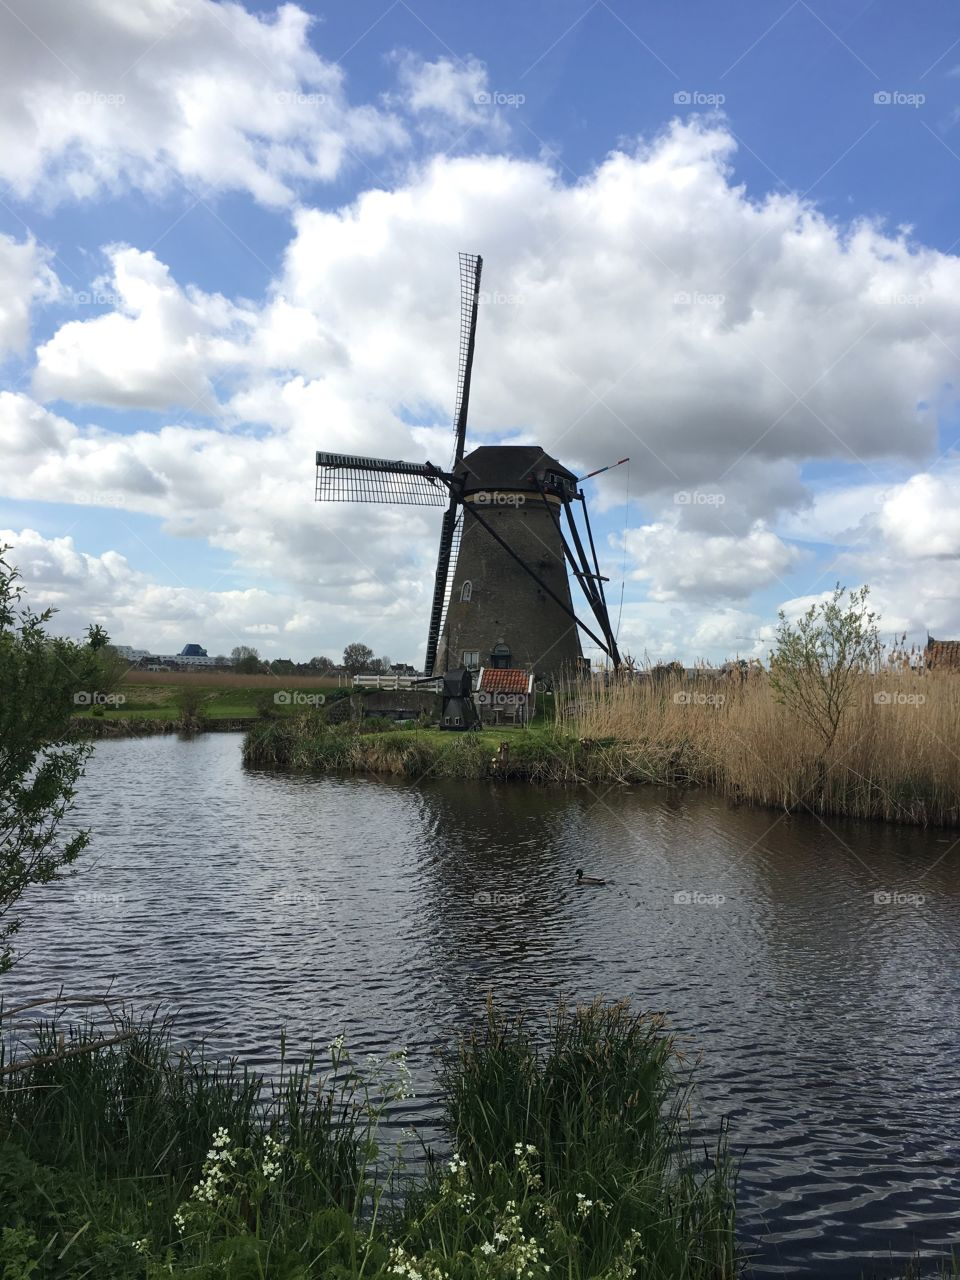 Got to see the windmills in Kinderdijk! It was a beautiful place.